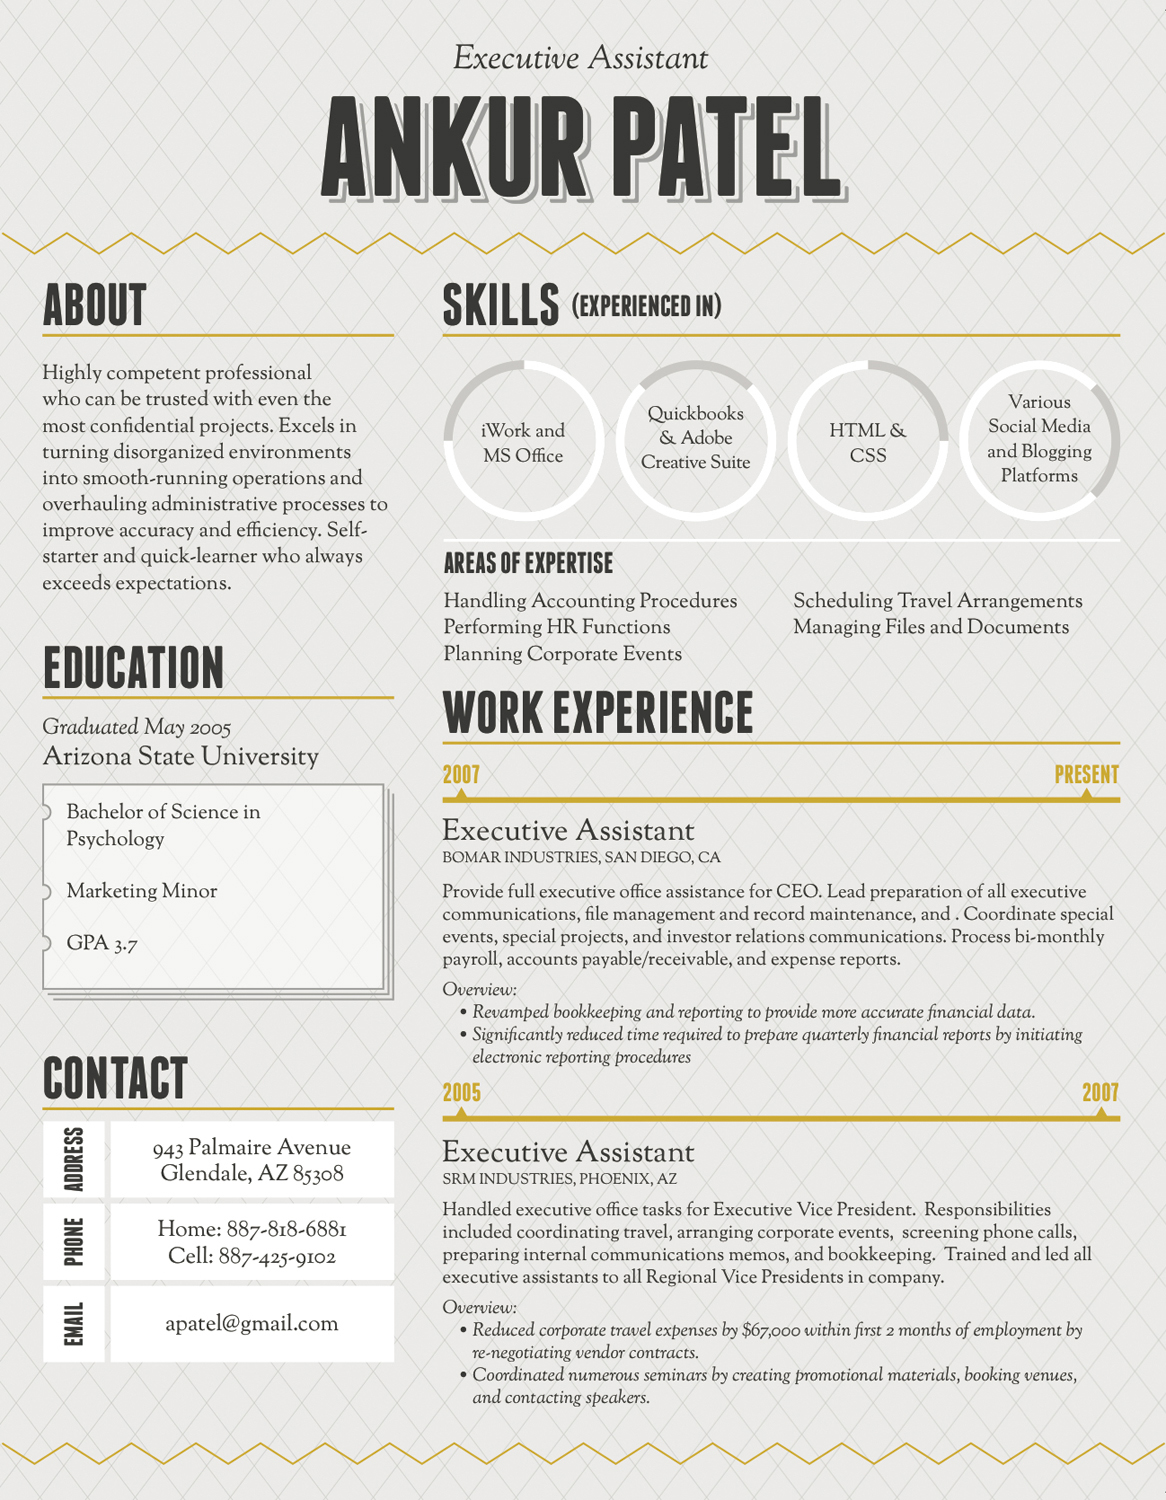 to make an infographic resume ready ankur patel template work style for supervisor Resume Ankur Patel Resume Template